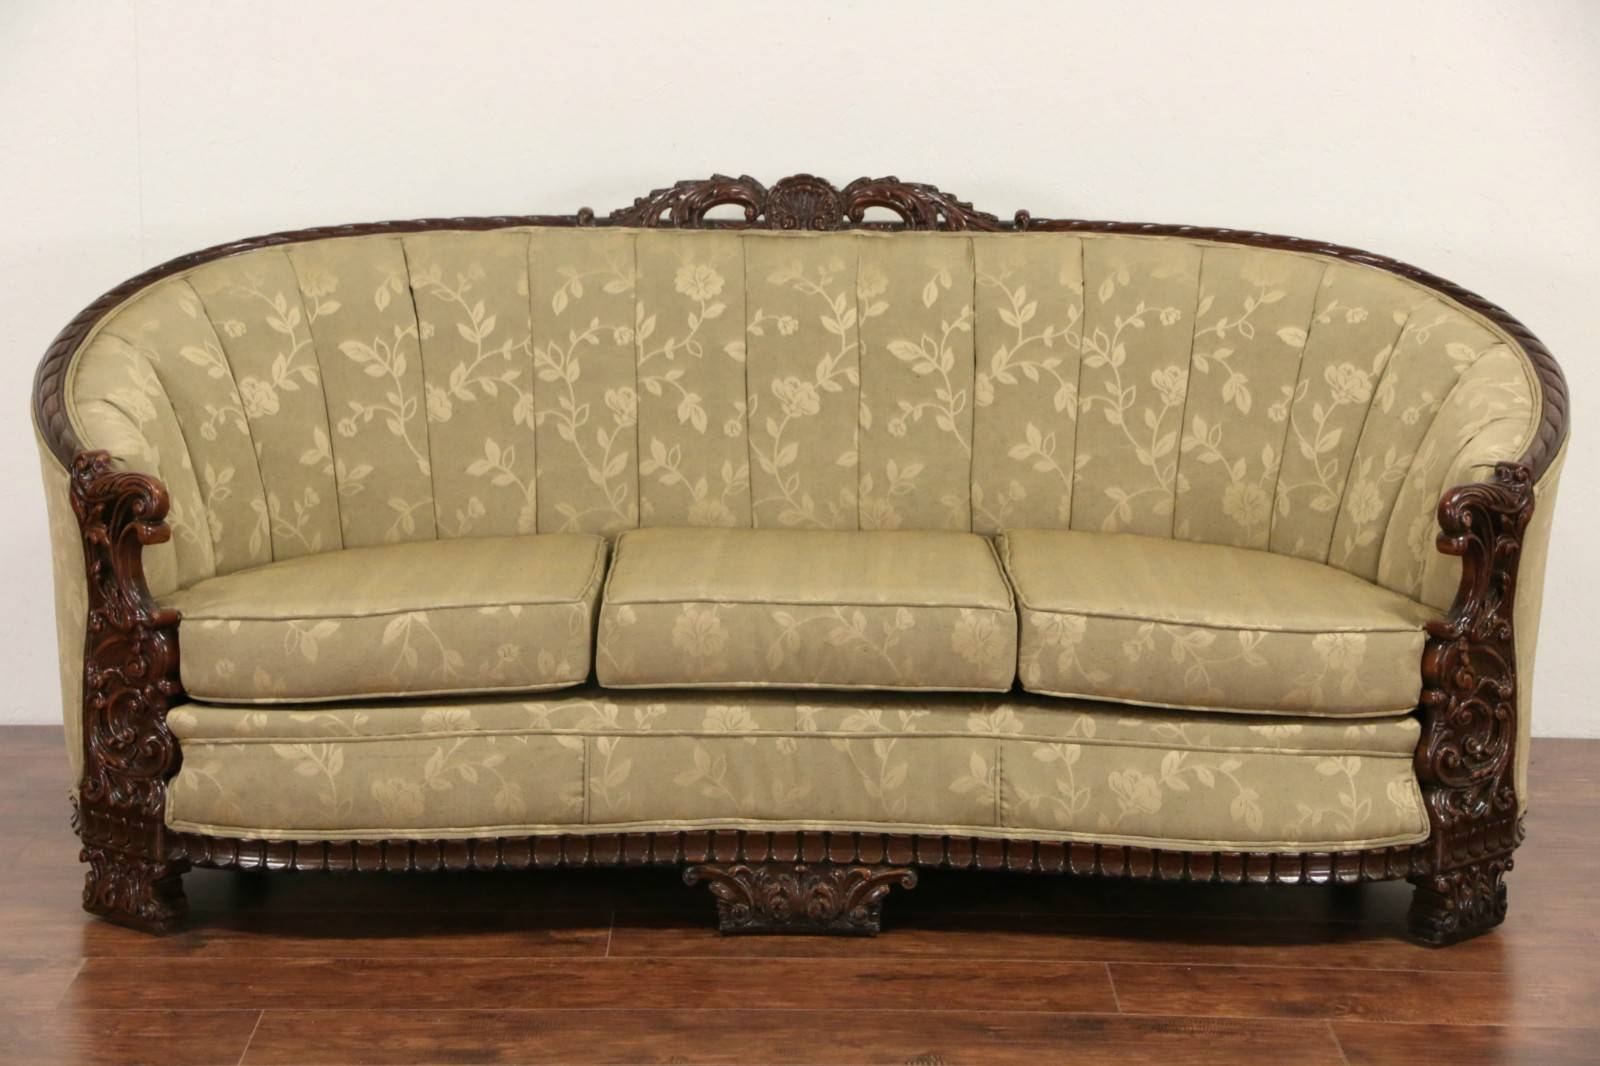 Sold - Carved Sofa & Club Chair Set, 1930's Vintage, New regarding 1930S Sofas (Image 26 of 30)